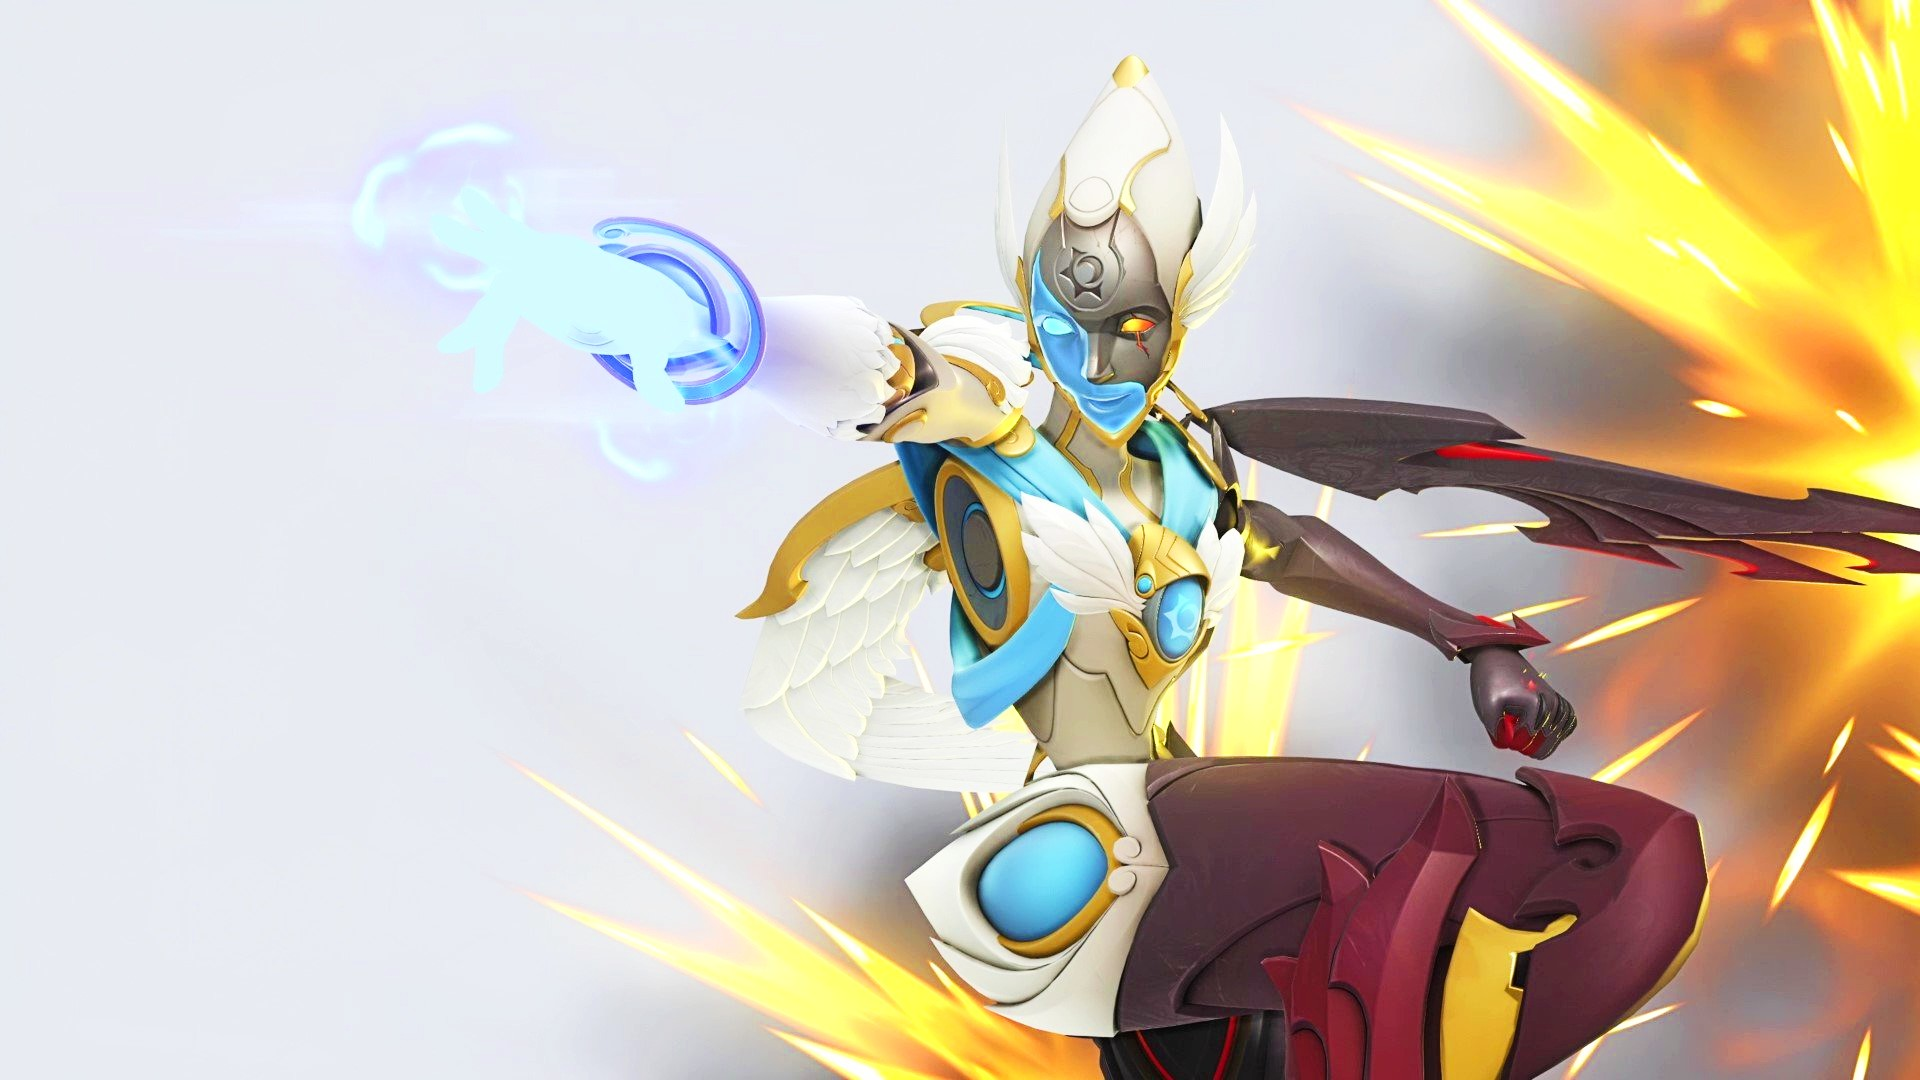 Overwatch isn't getting any more League MVP skins